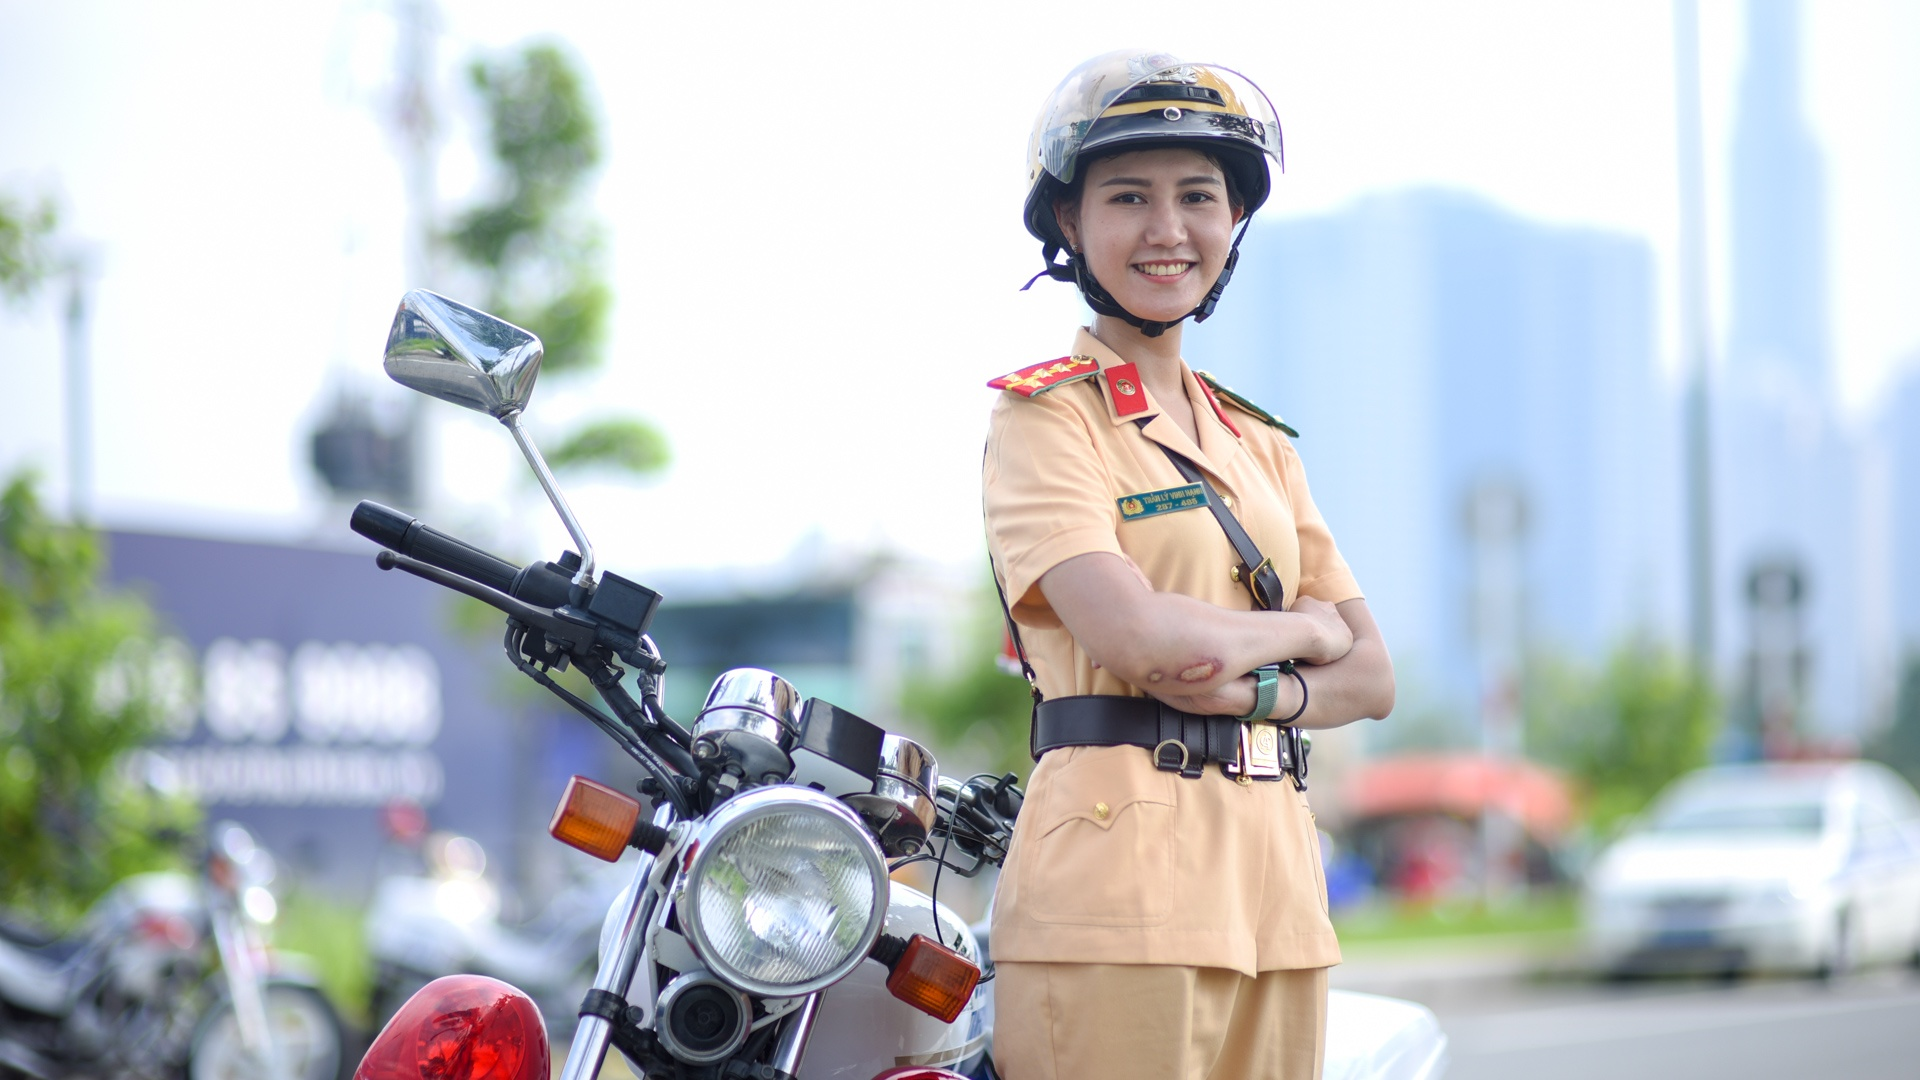 Nu canh sat giao thong anh 1